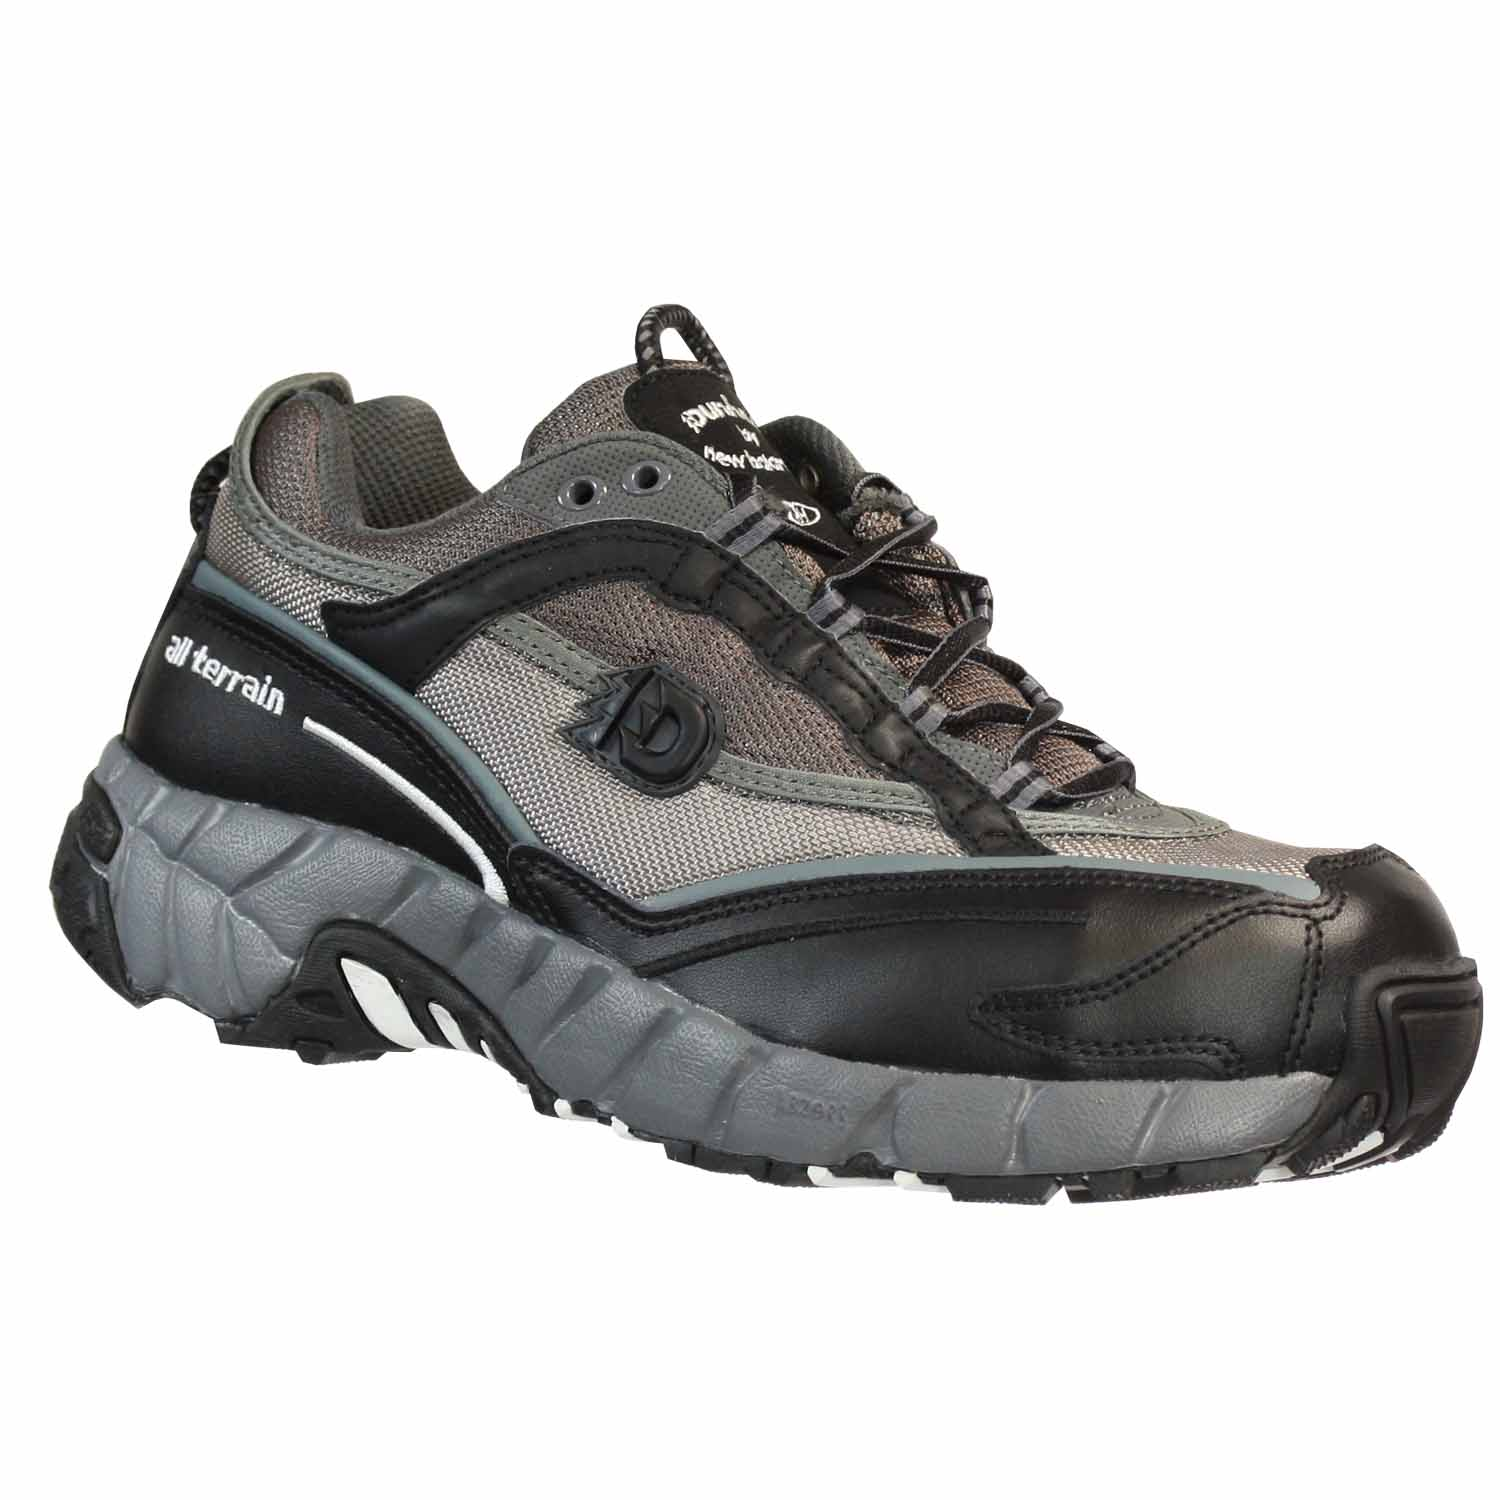 Dunham New Balance 8702 Mens Steel Toe Athletic Safety ...